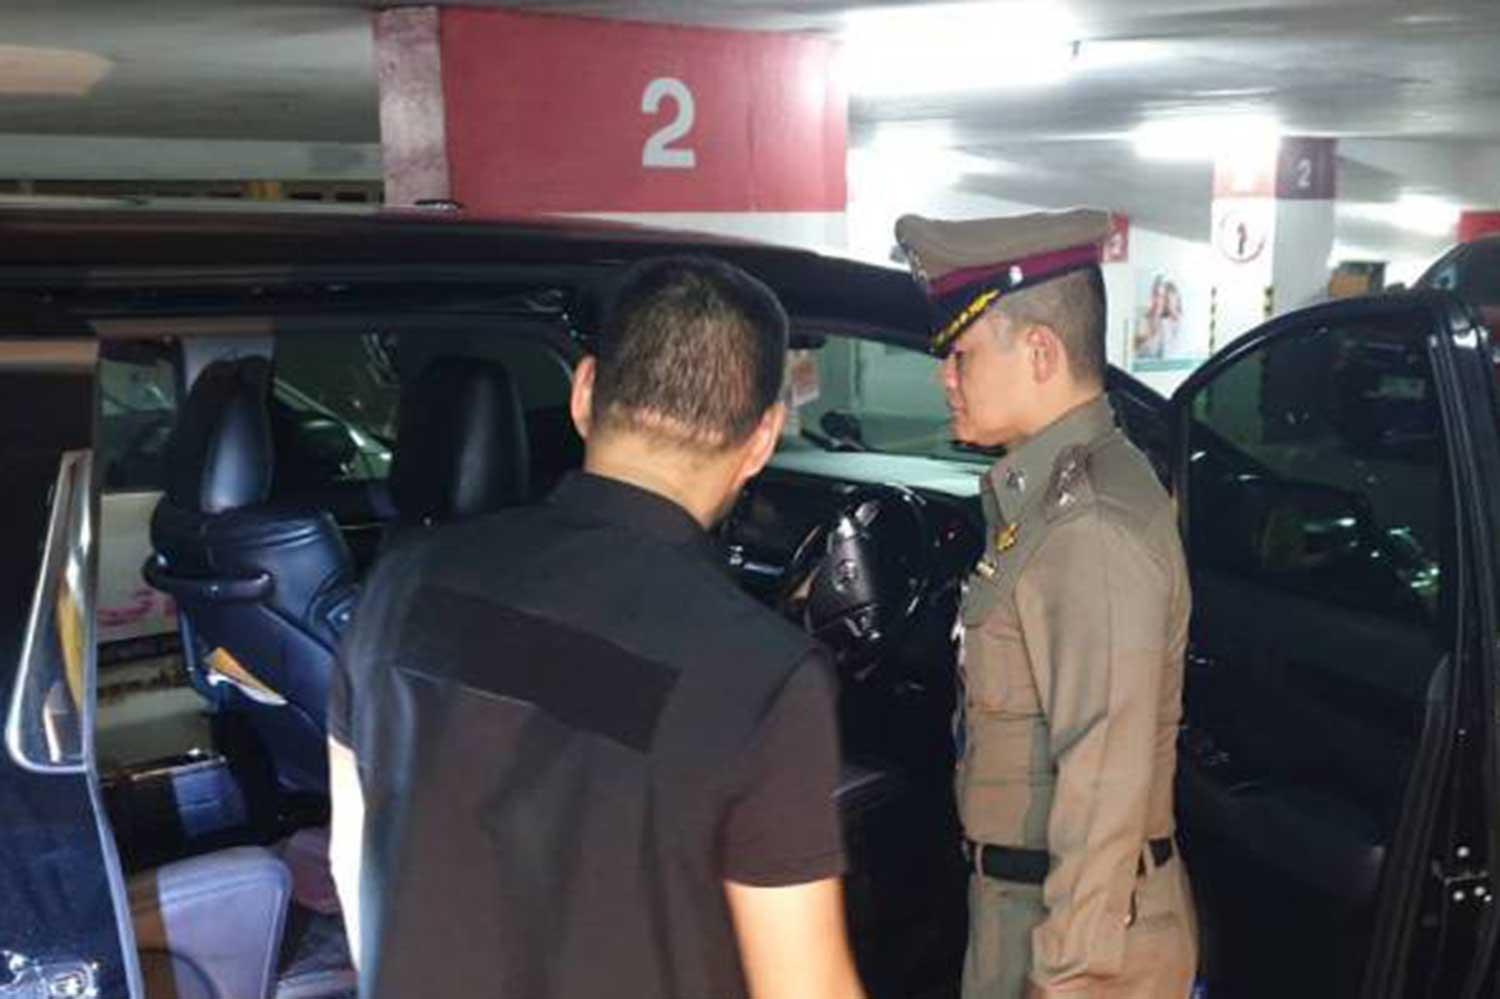 Police examine the car where a woman was fatally shot while her Chinese boyfriend was playing around with a friend's gun, on Rama 3 in Bangkok on Monday night. (Photo taken from www.workpointnews.com)